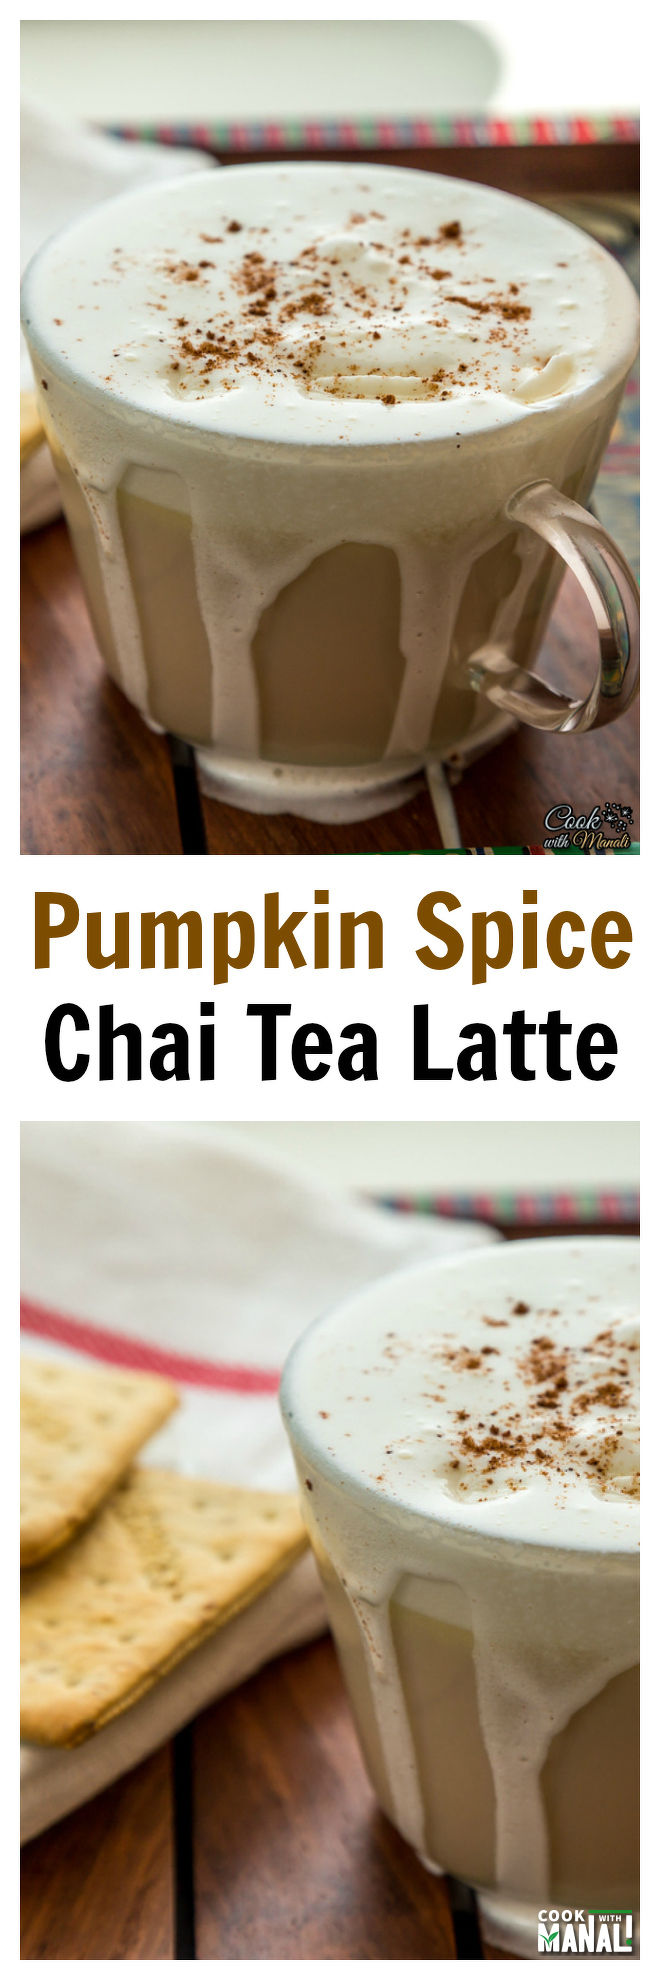 Pumpkin-Spice-Chai-Tea-Latte Collage